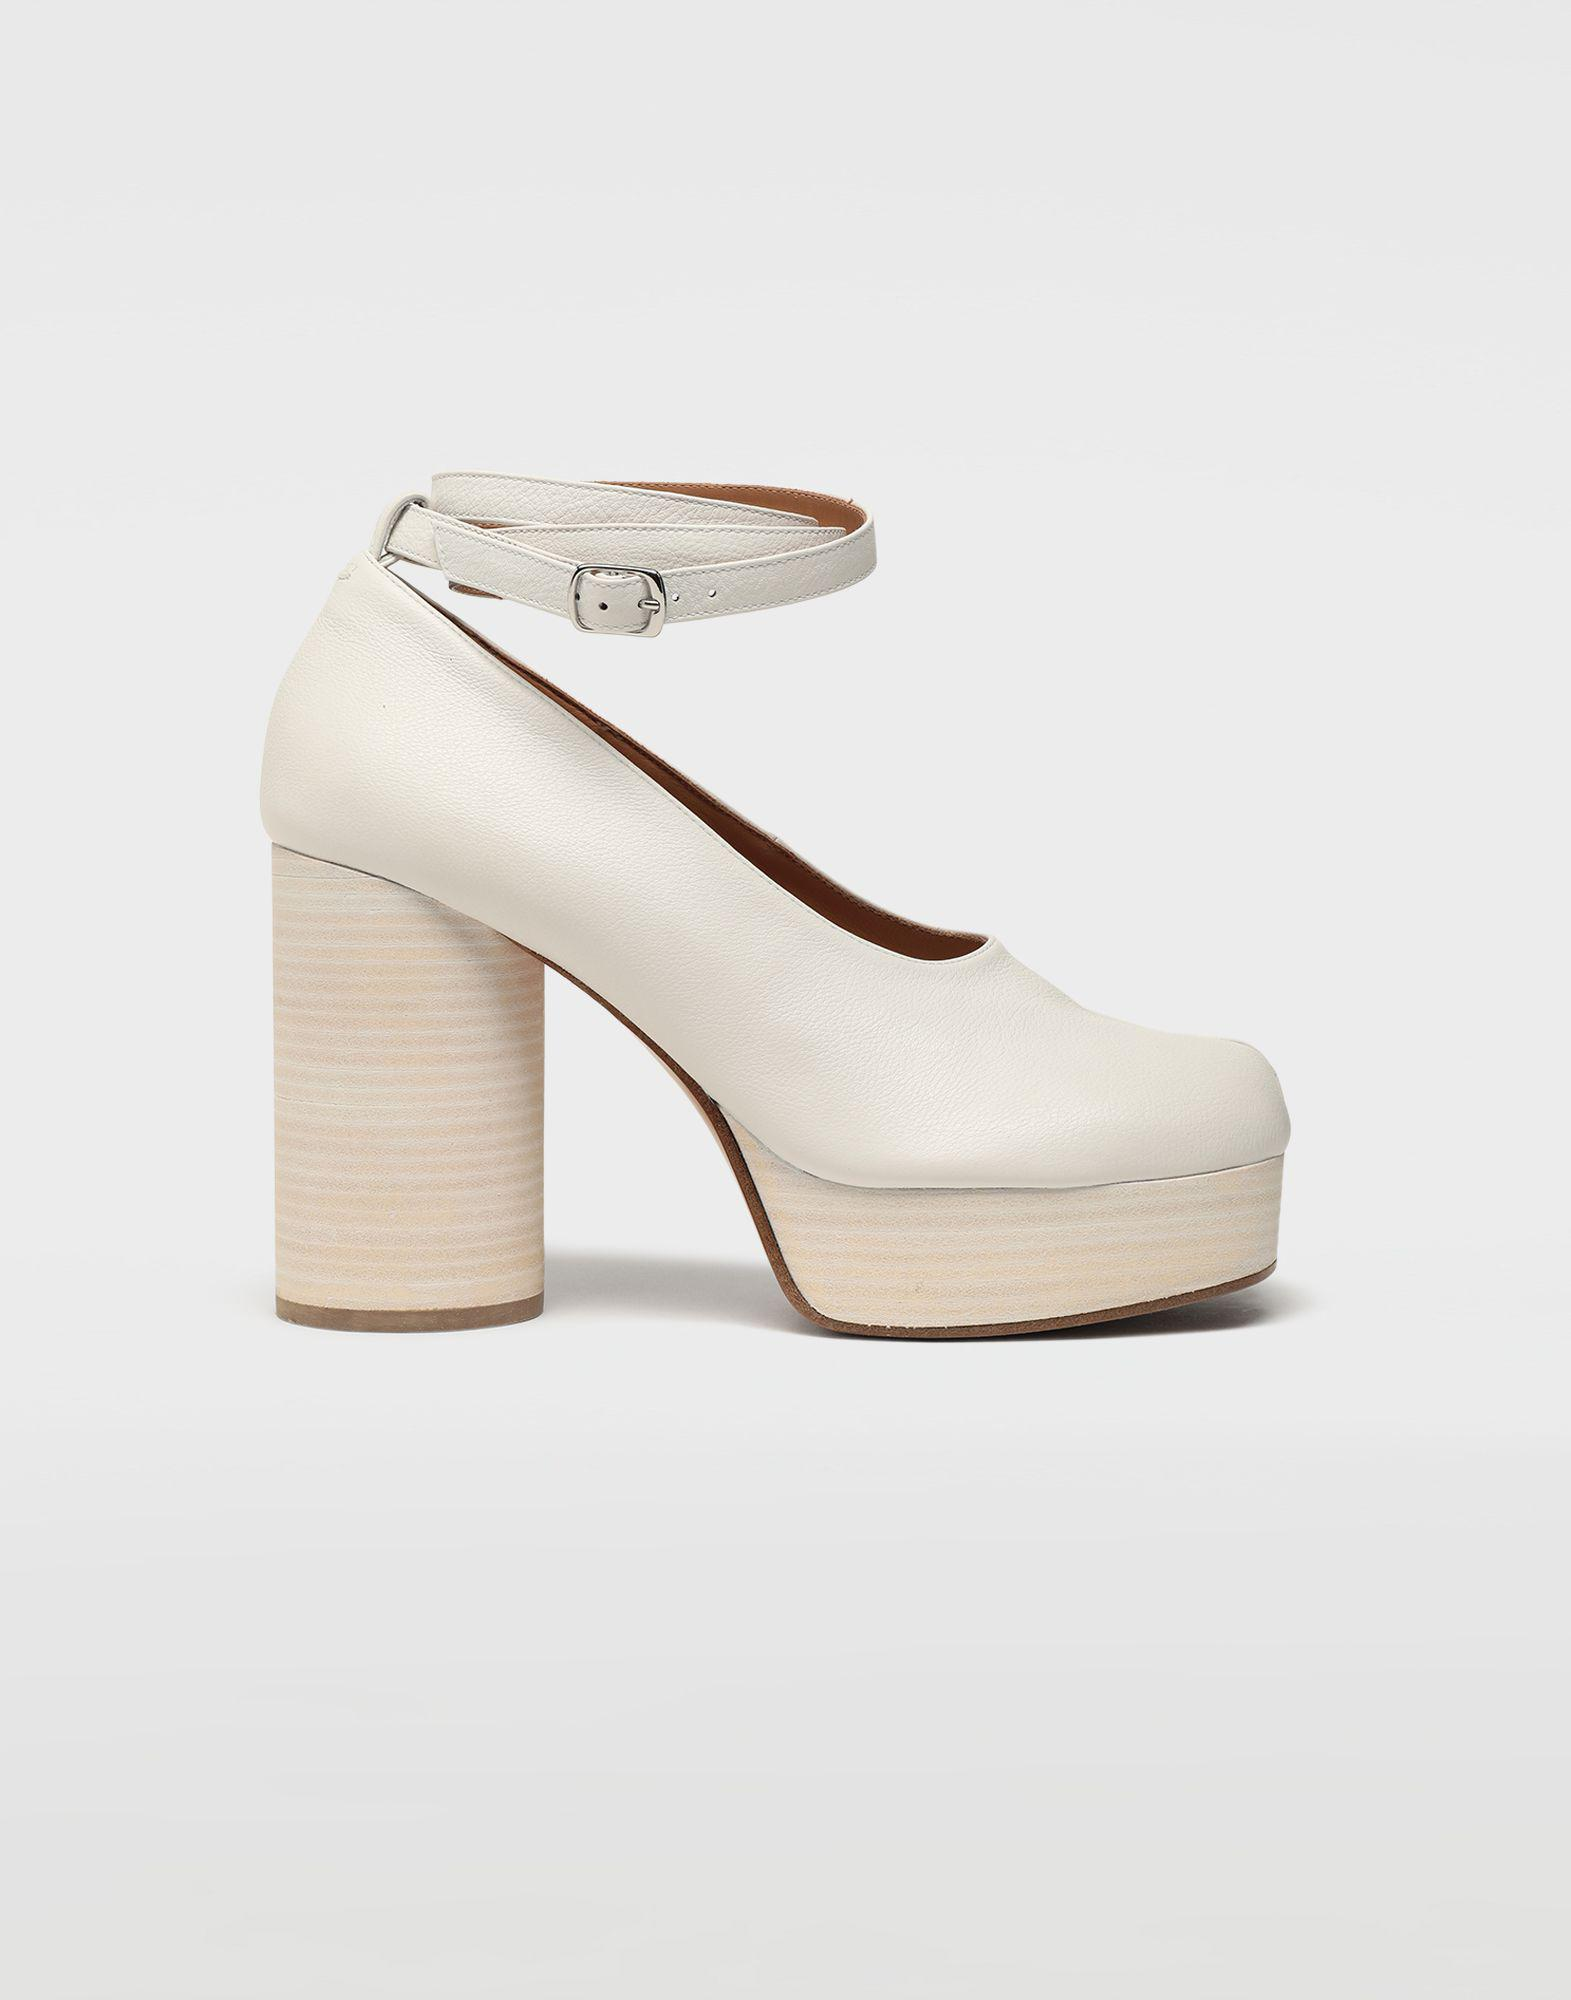 36f3599f09e8 Lyst - Maison Margiela Tabi Ankle Tie Leather Pumps in White